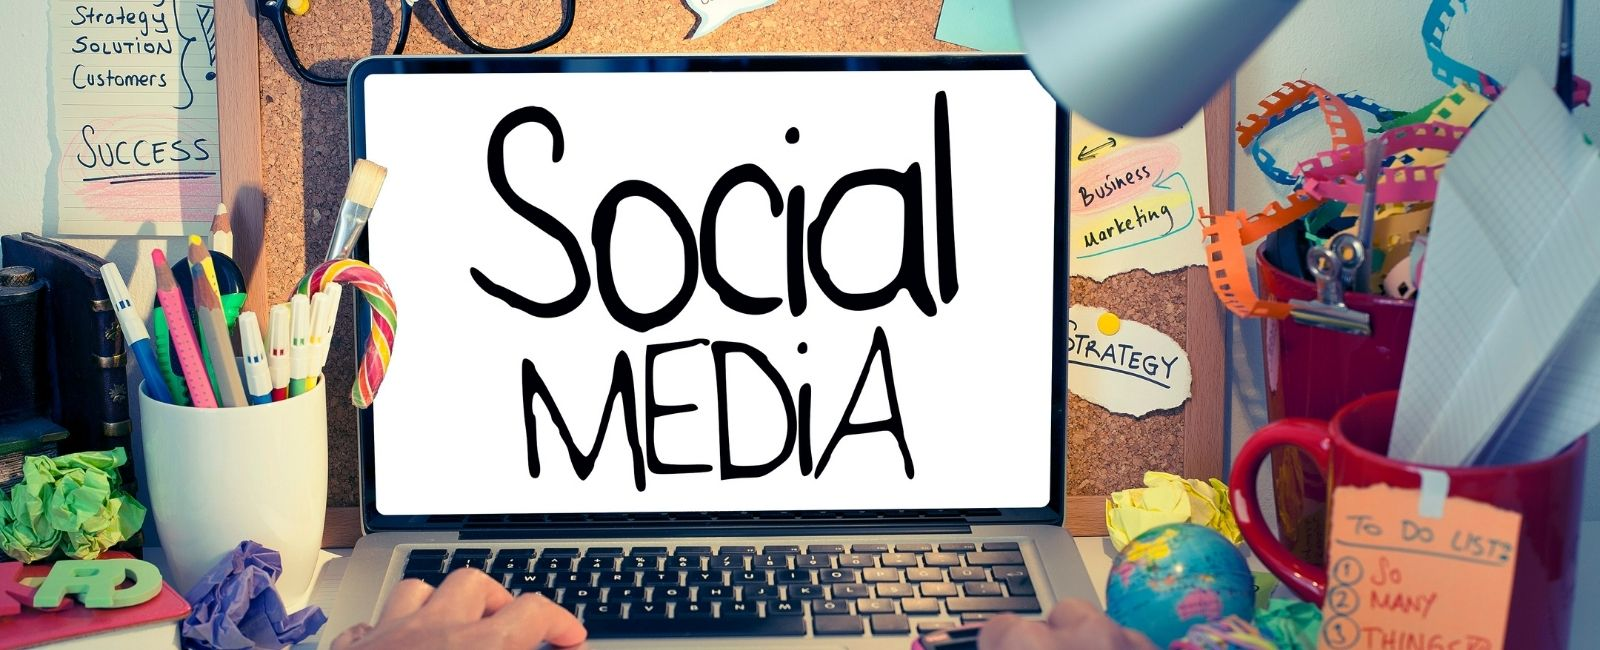 So You Want To Be A Social Media Manager